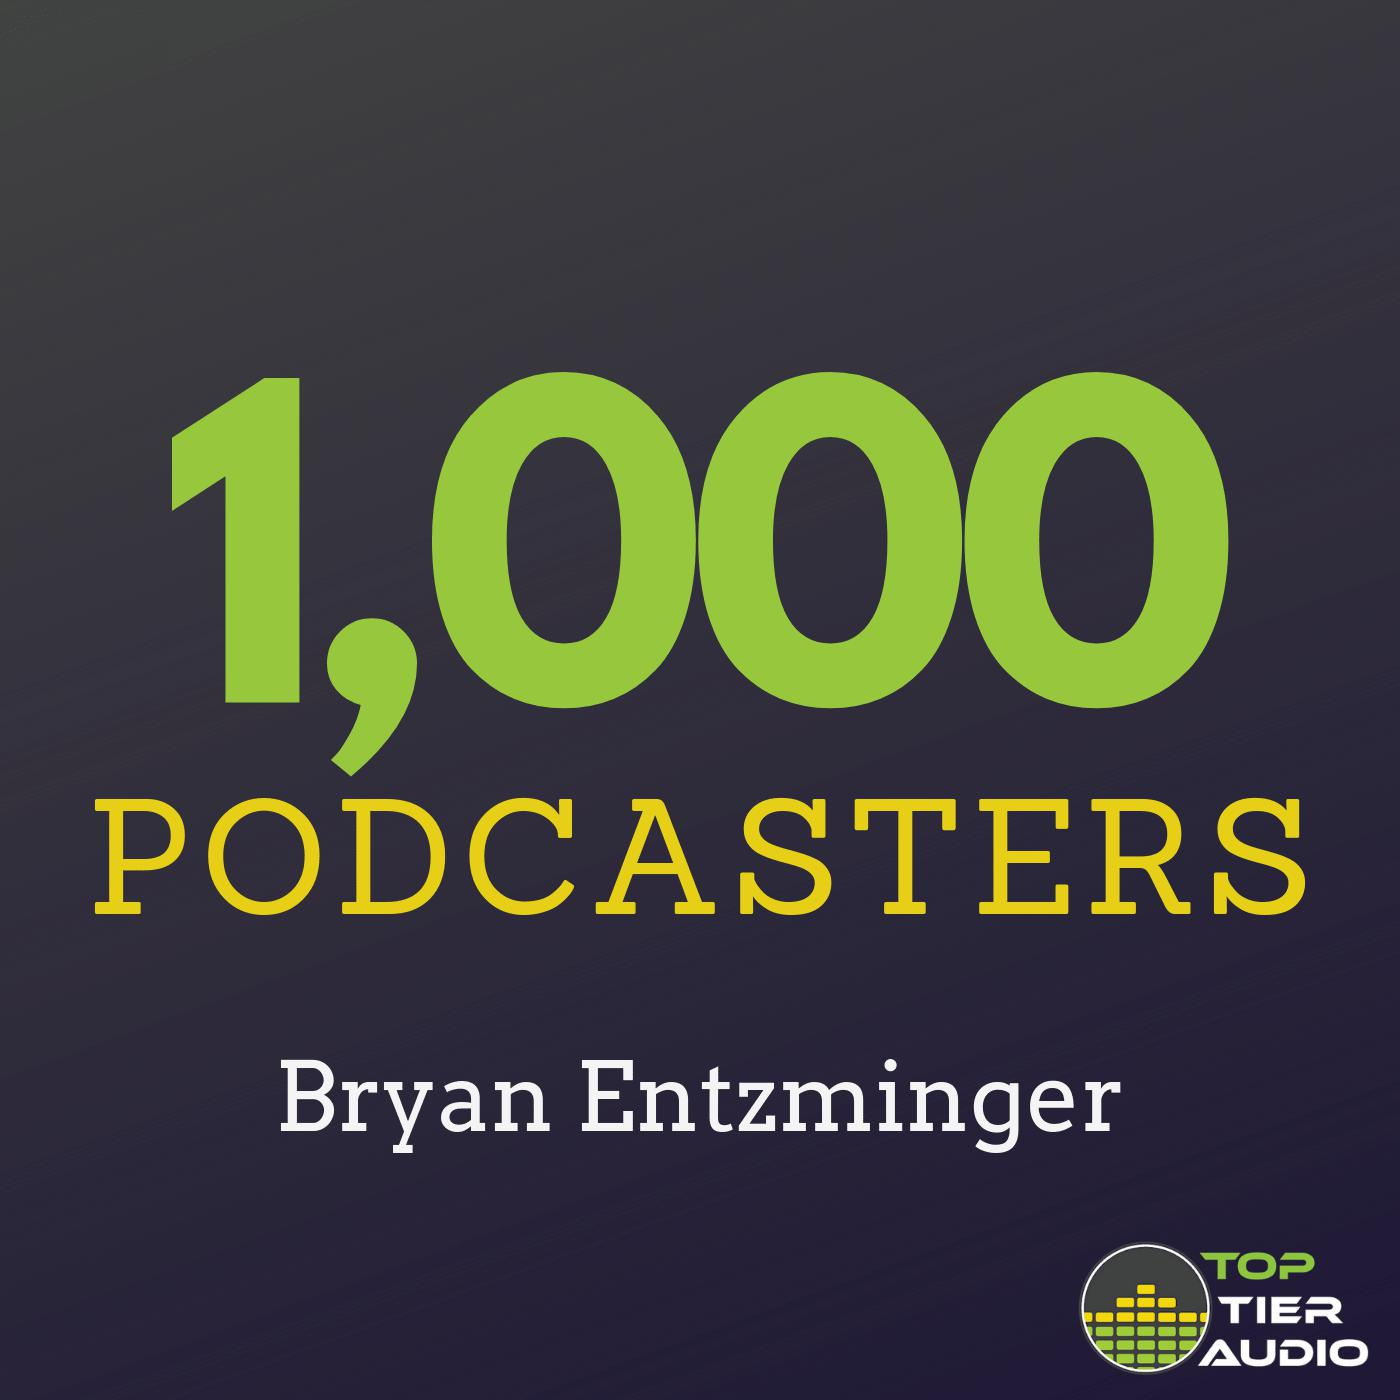 Don't make these podcasting mistakes - 1KP0079